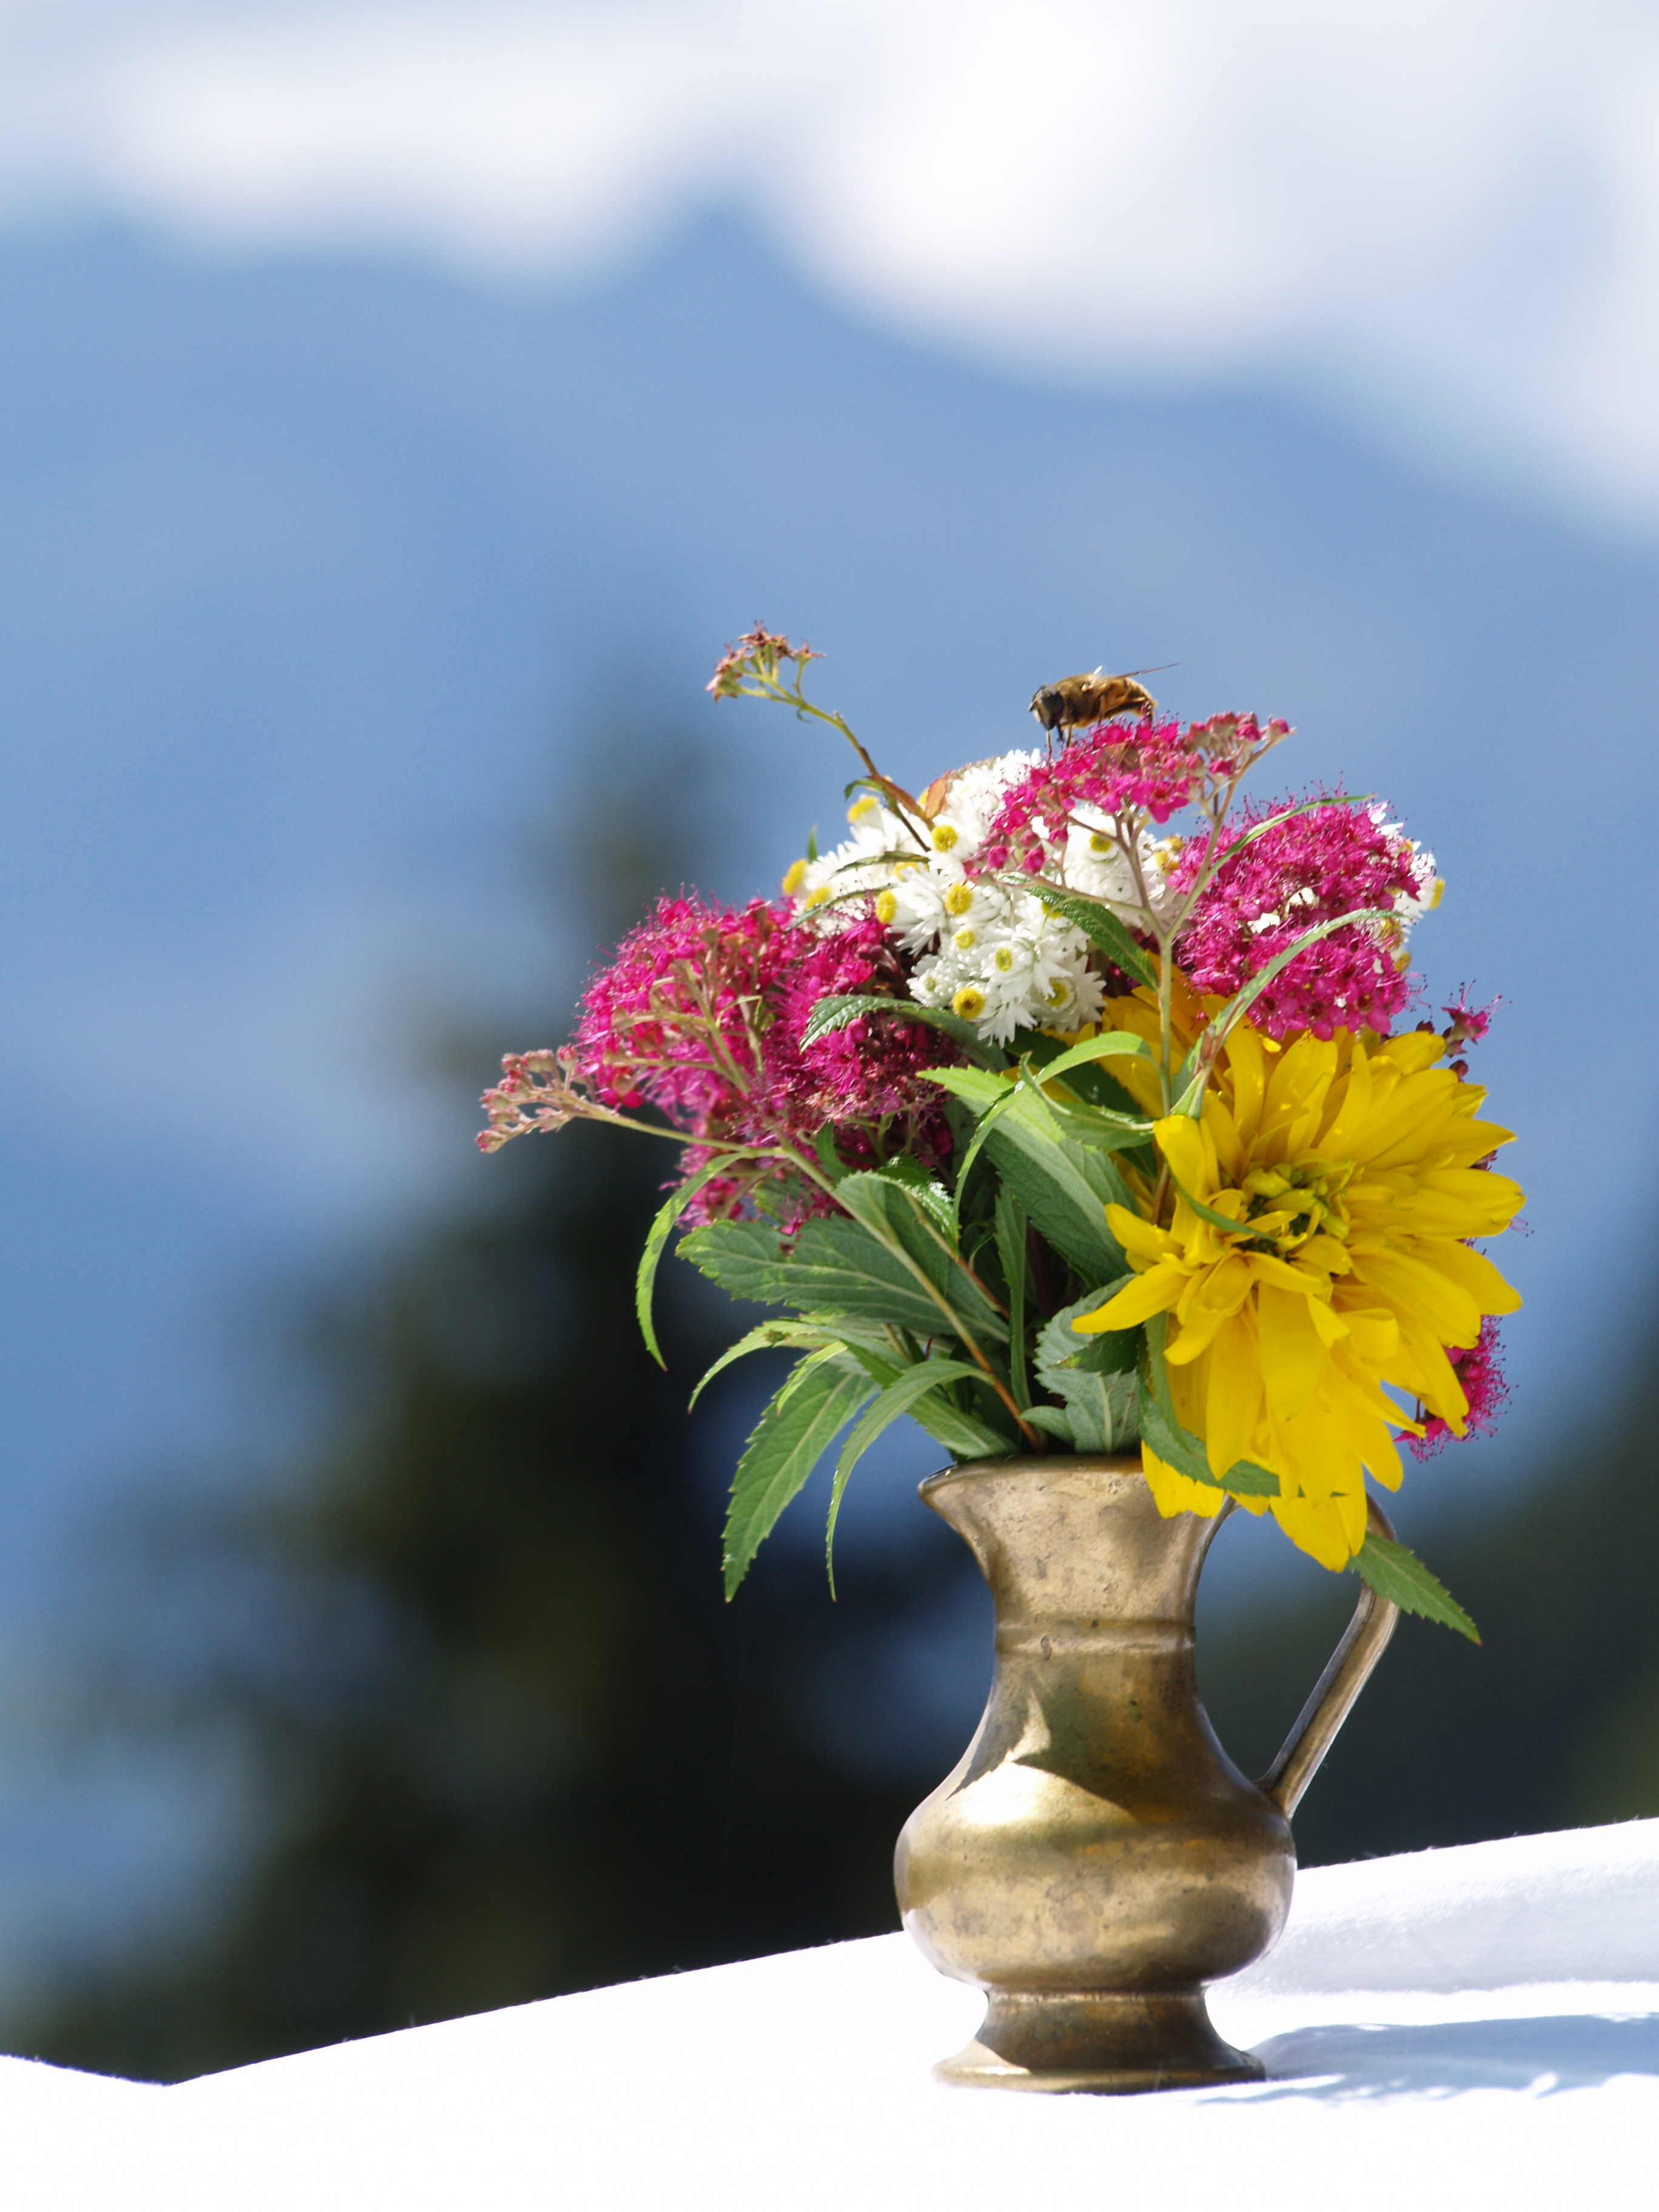 Plant and flower health benefits